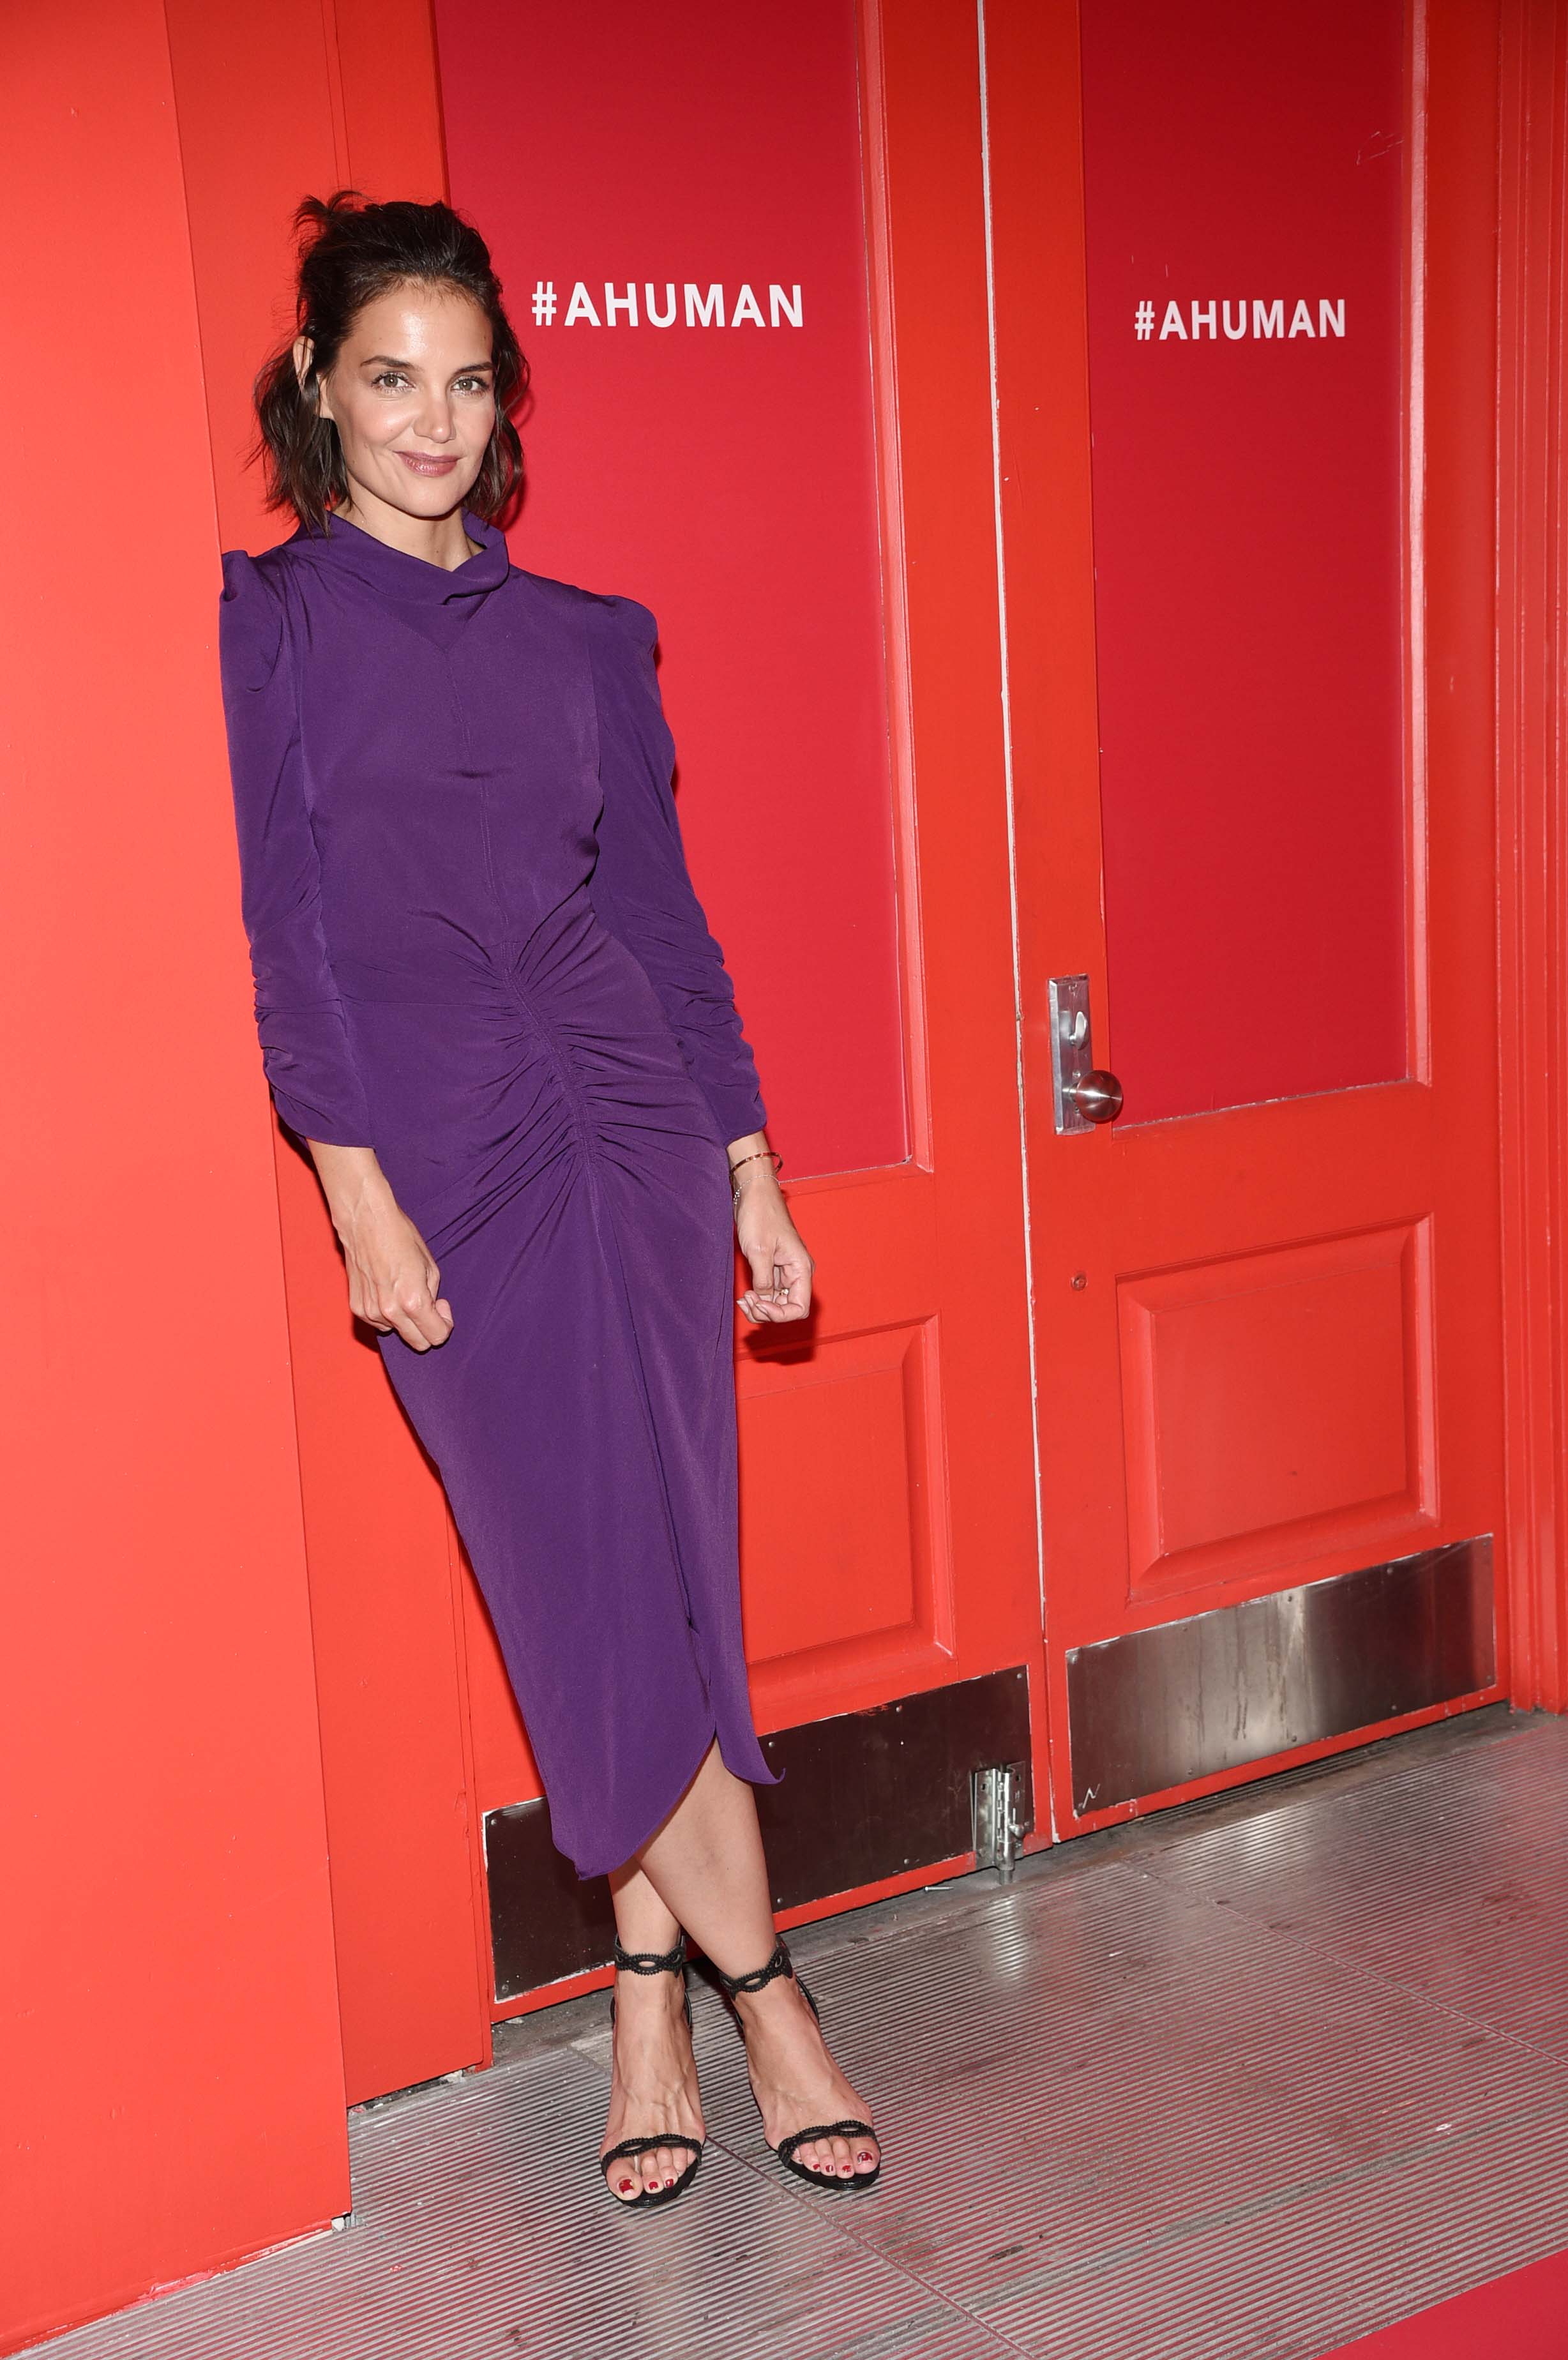 katie-holmes-a-human-experience-exhibit-in-nyc-9418-13